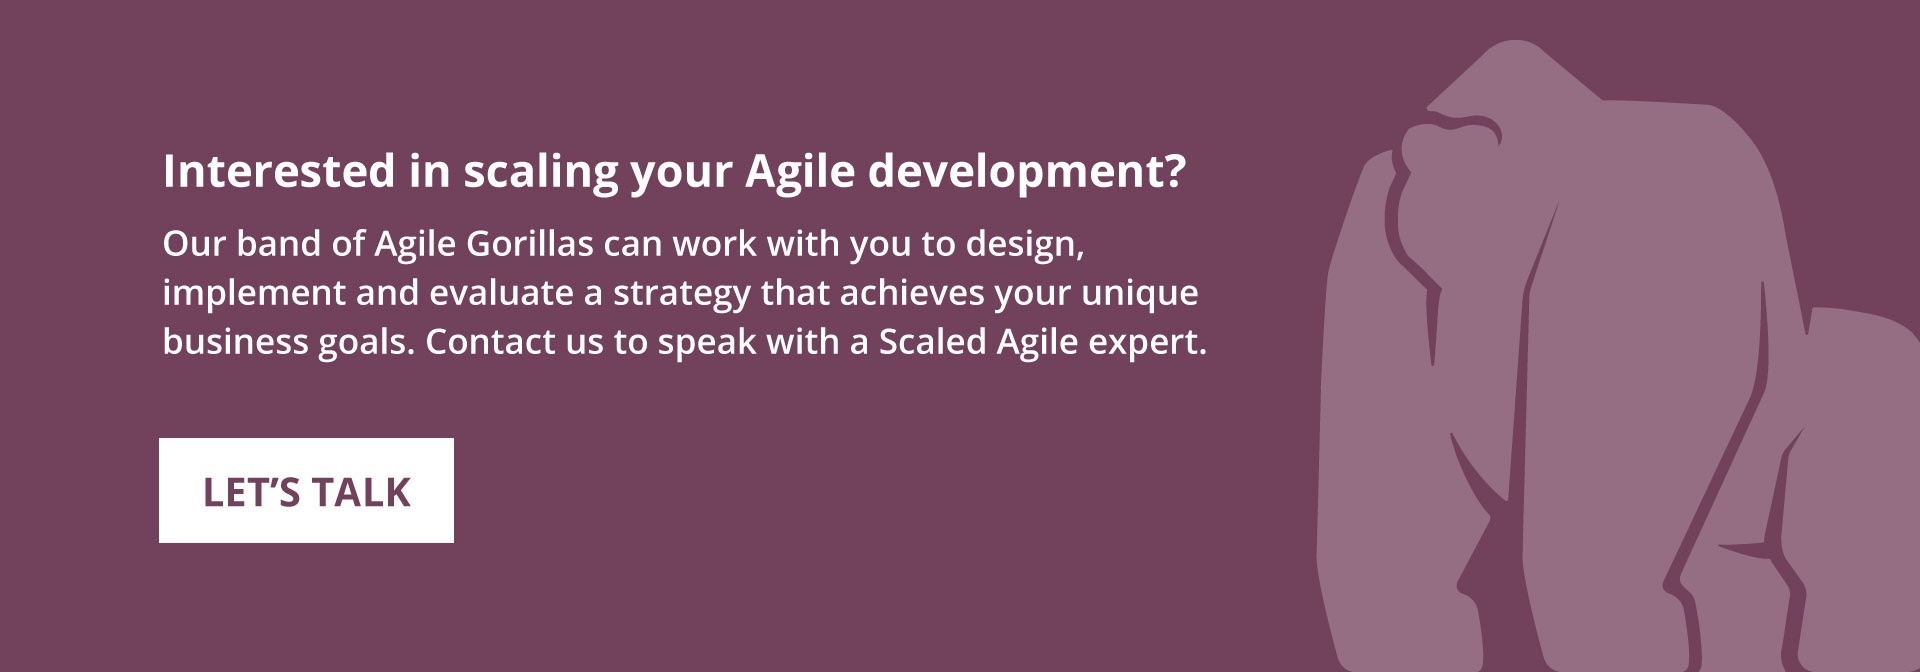 Interested in scaling your Agile development?